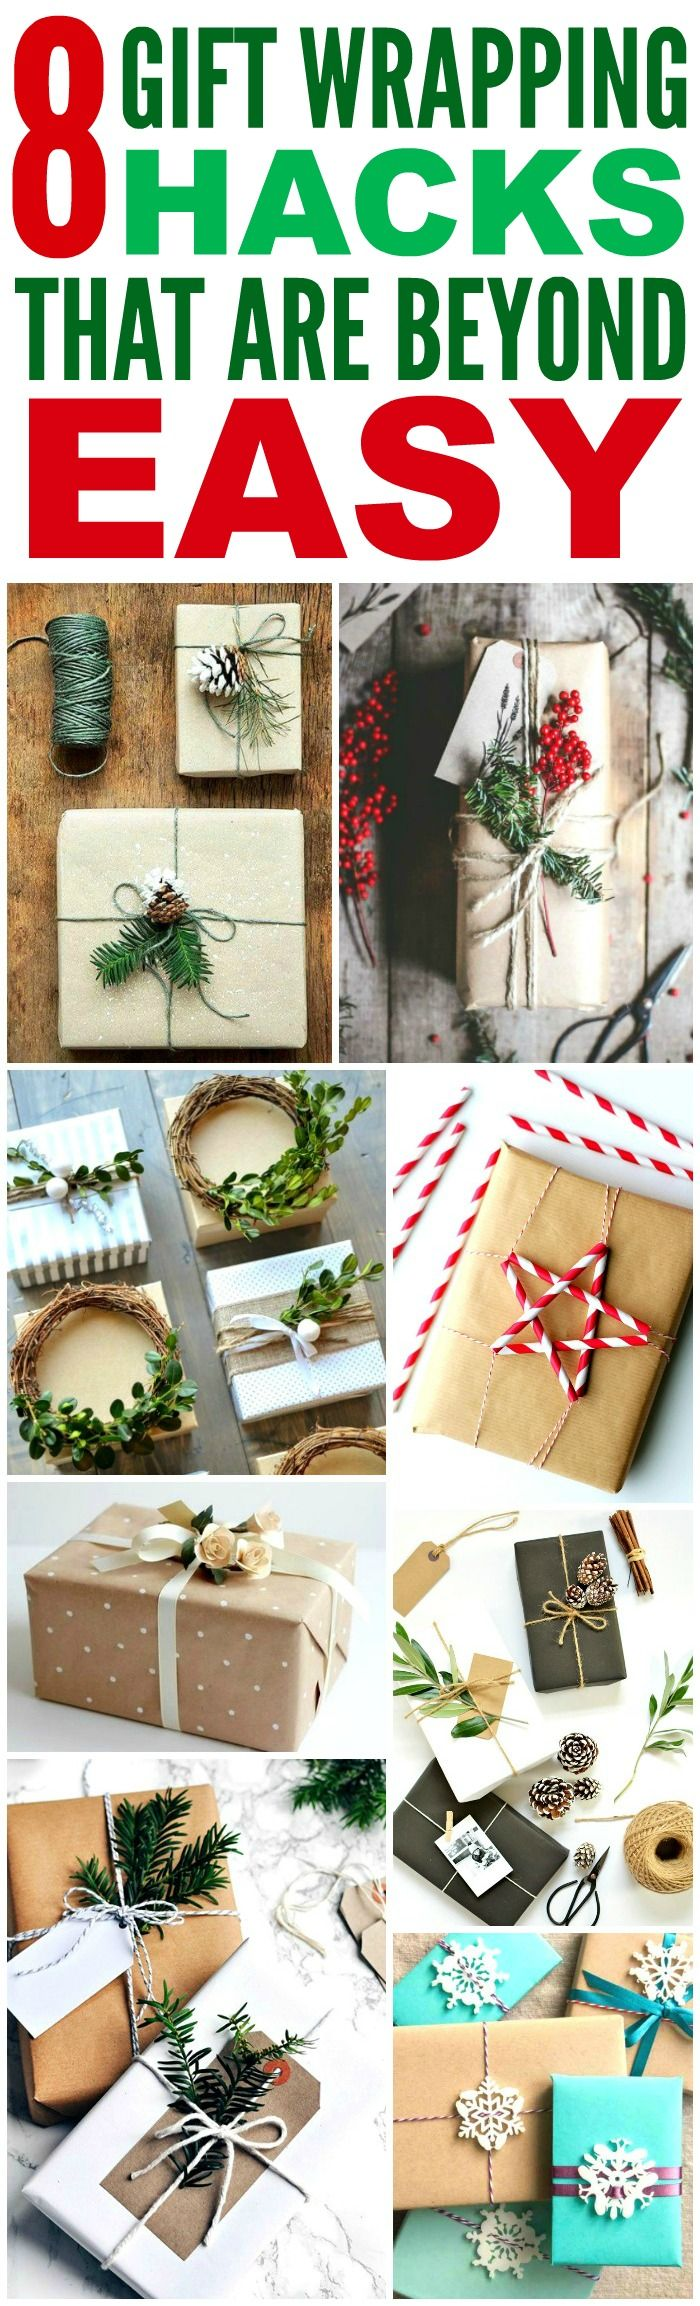 These 8 Creative Ways to wrap Christmas Presents are THE BEST! I'm so happy I found these GREAT tips! Now I can impress friends and family with my skill! Definitely pinning!